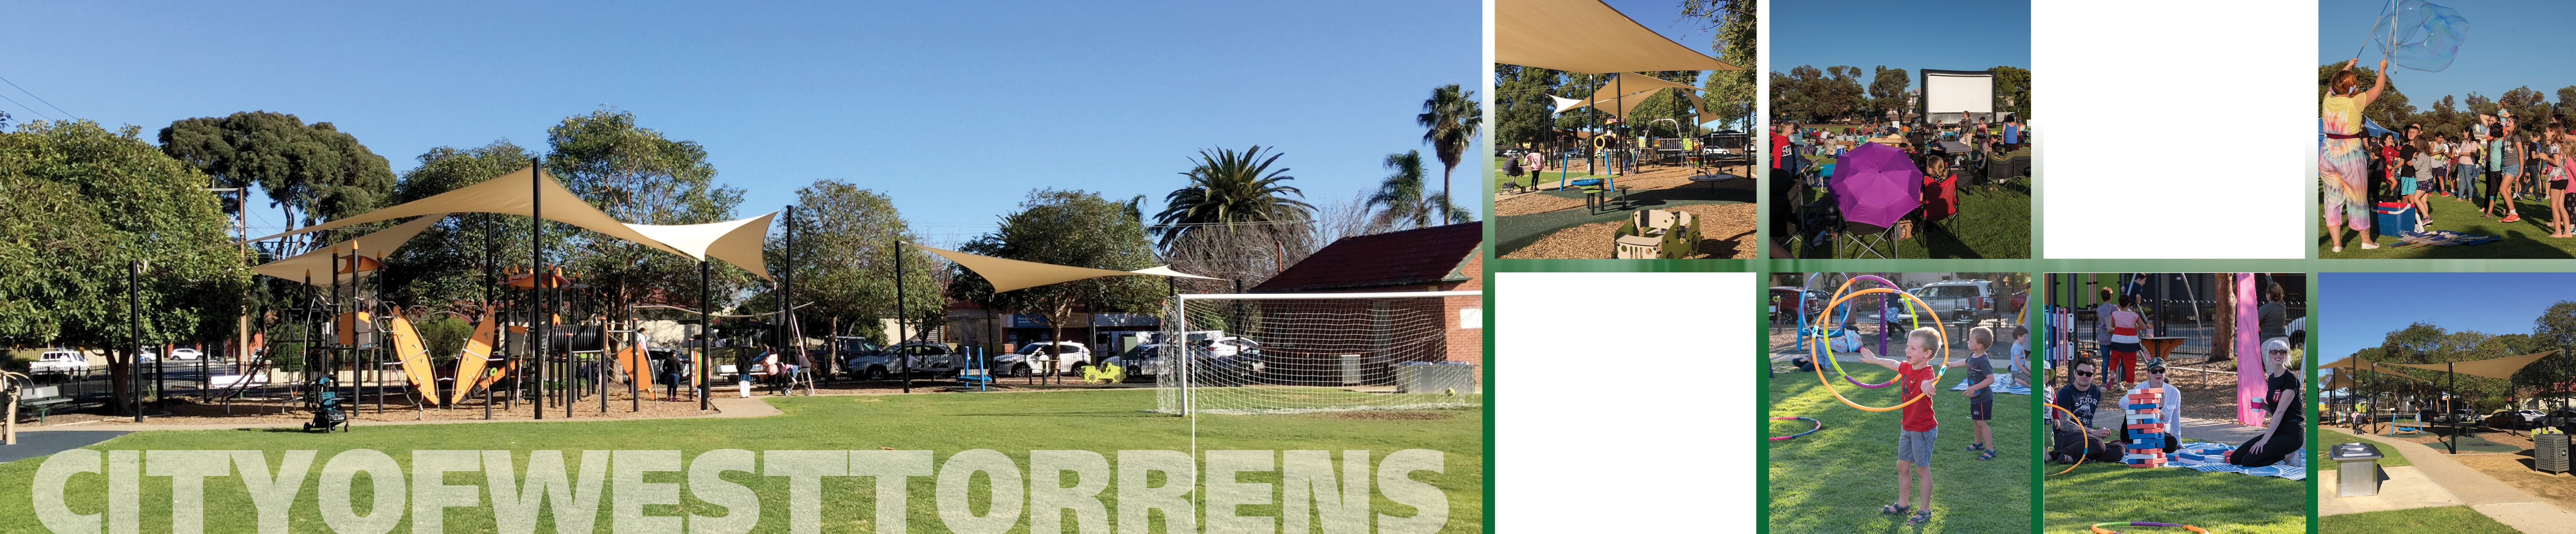 Montage of Kesmond Reserve playground, oval and activities